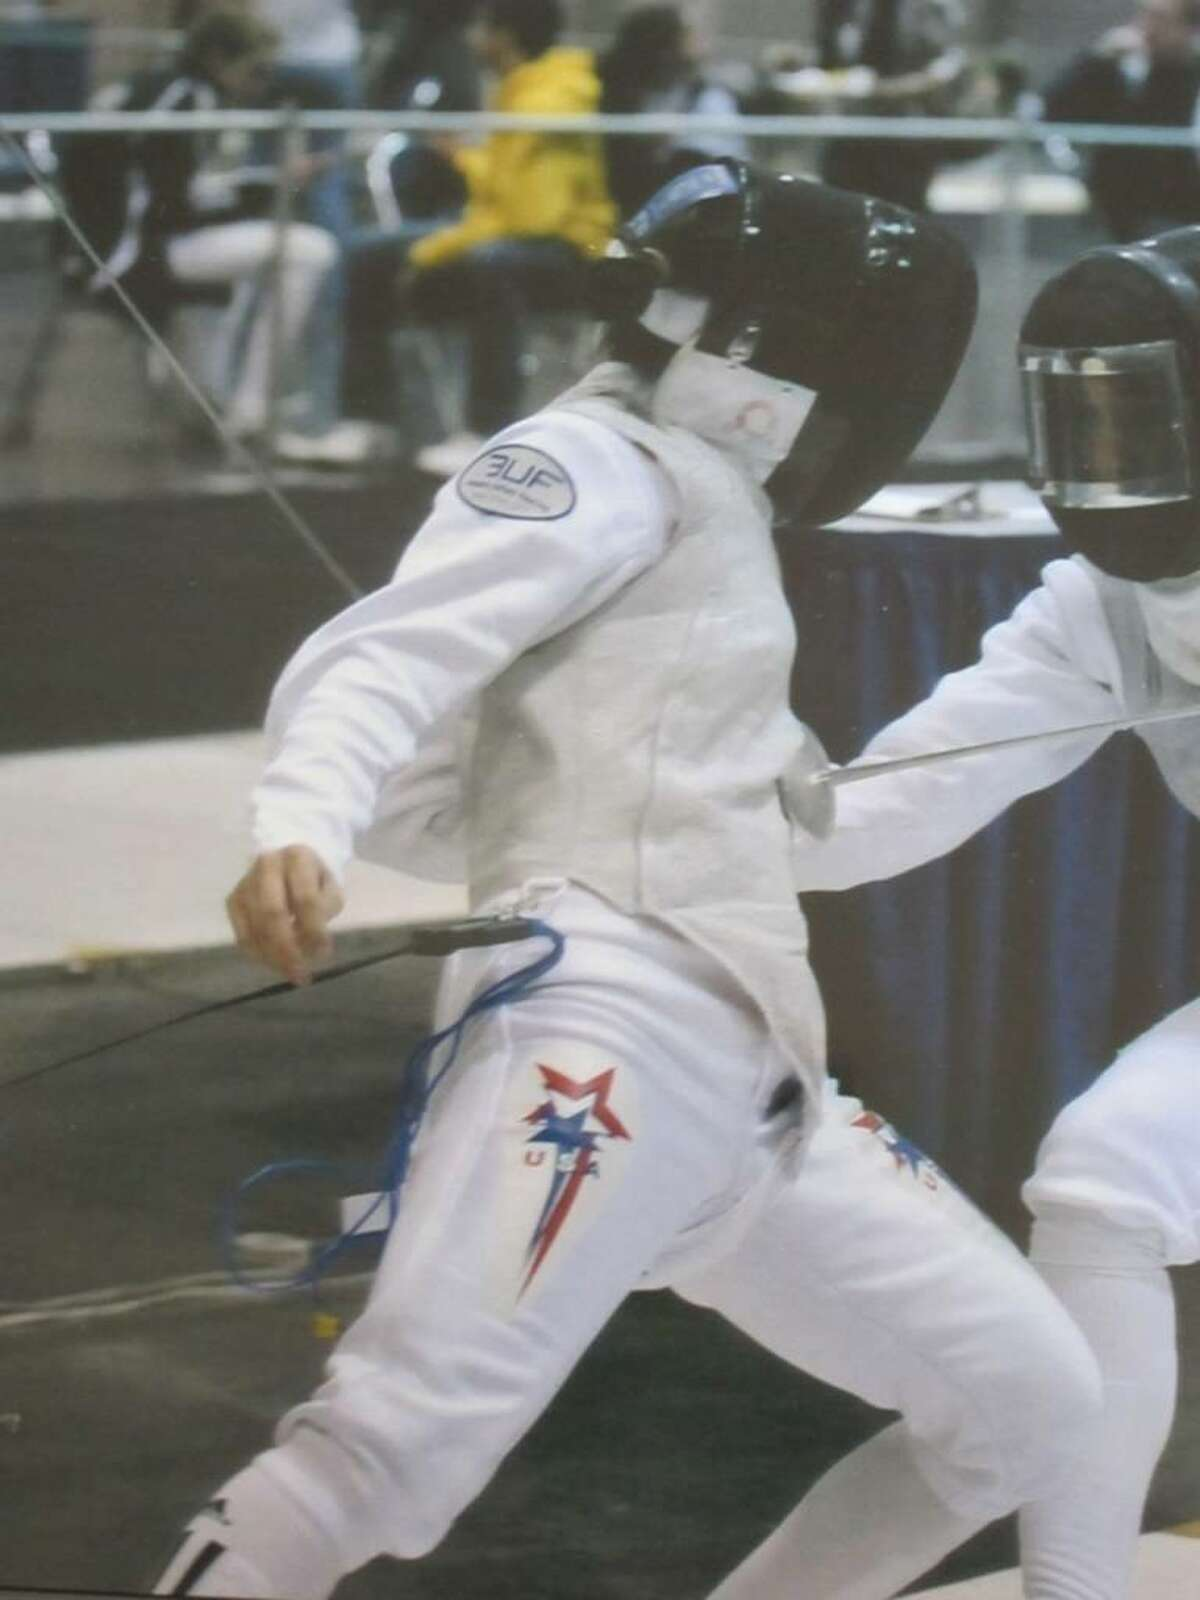 Greenwich fencer Margaret Lu, 15, recently earned sports on the Cadet National Team (17U) and, for the first time, the Junior National Team (20U).